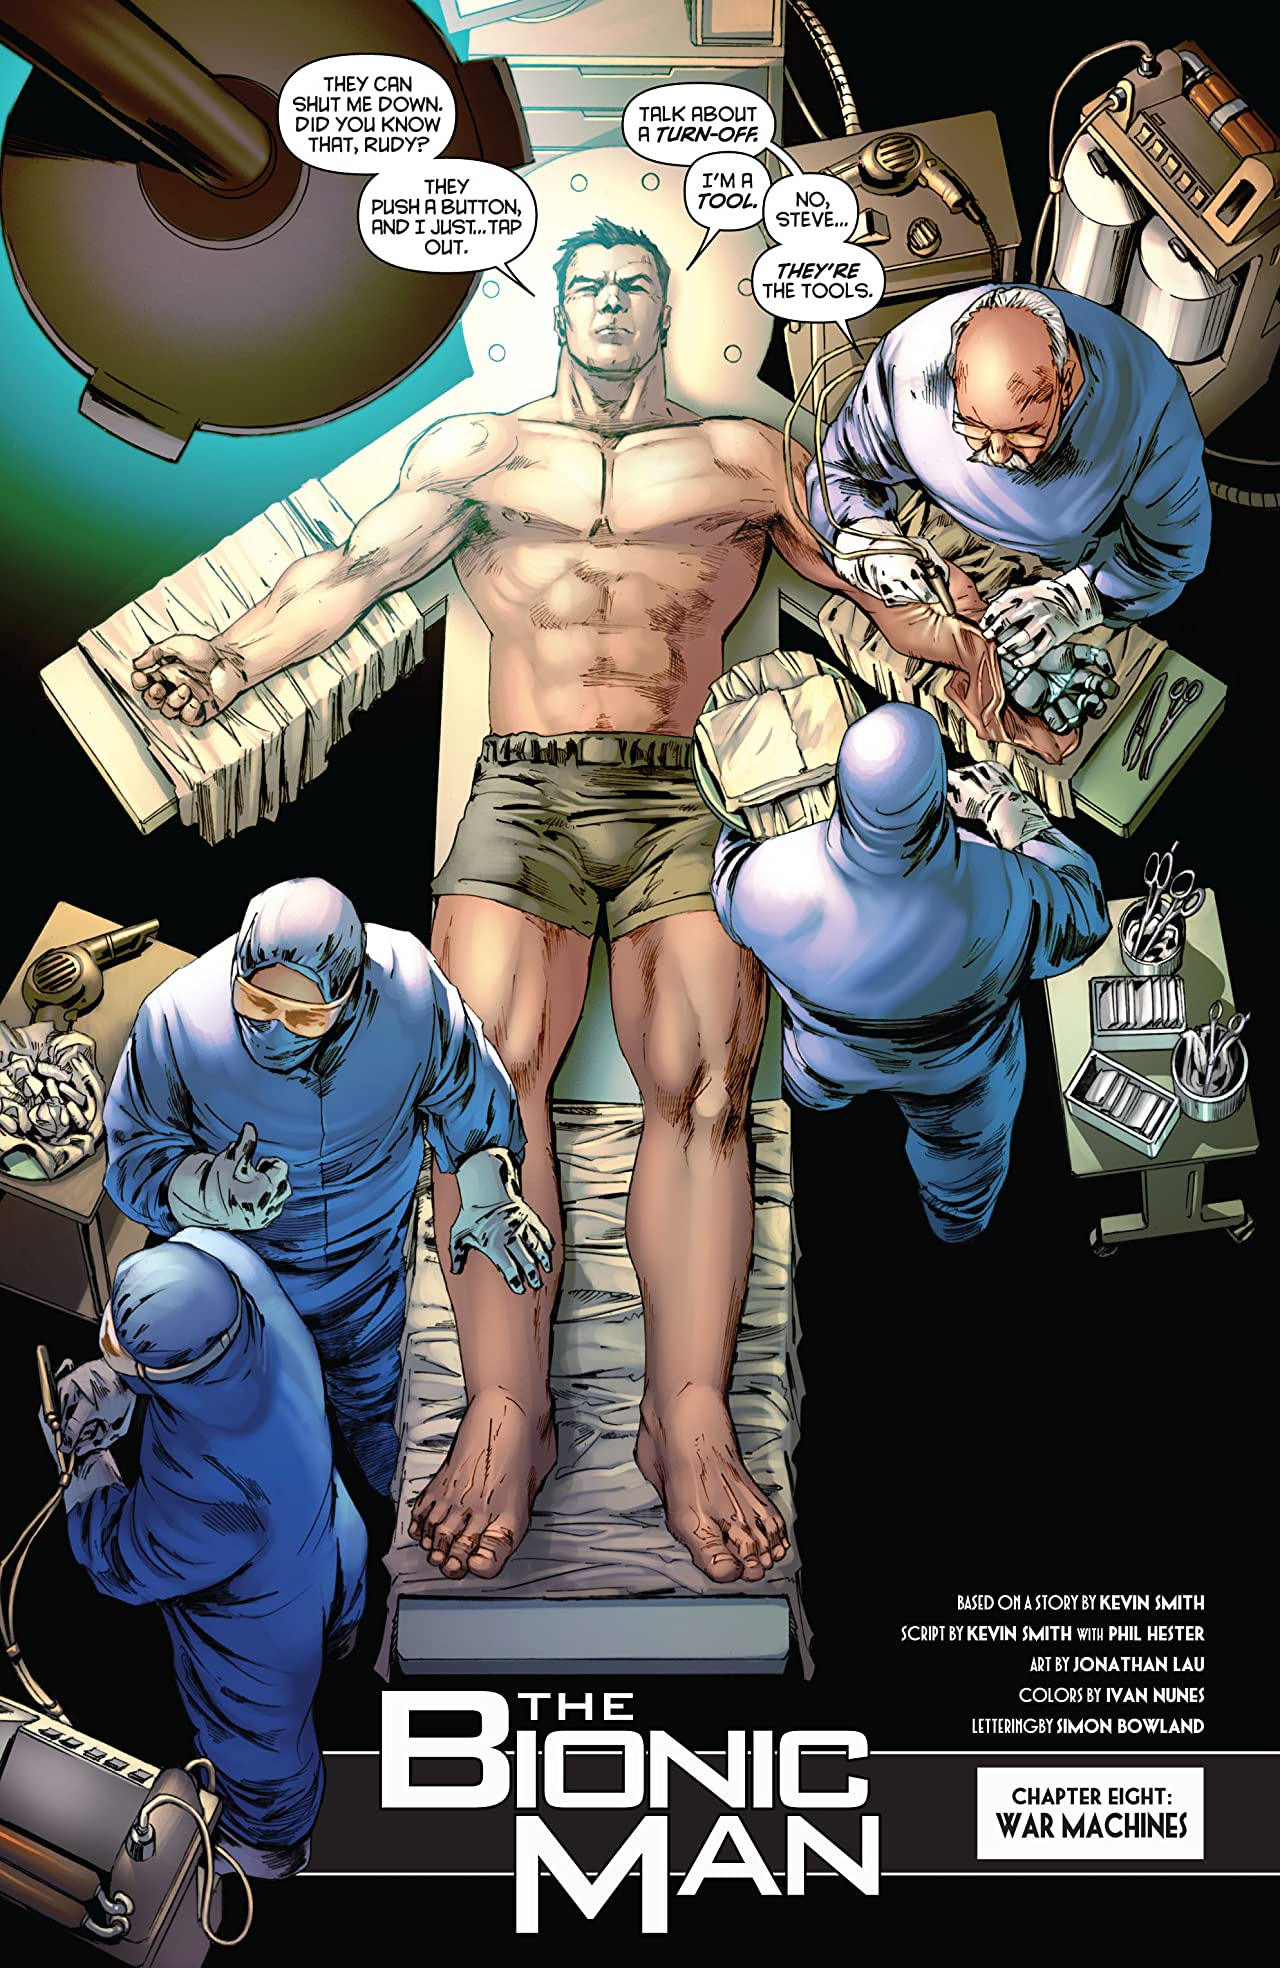 The Bionic Man #8